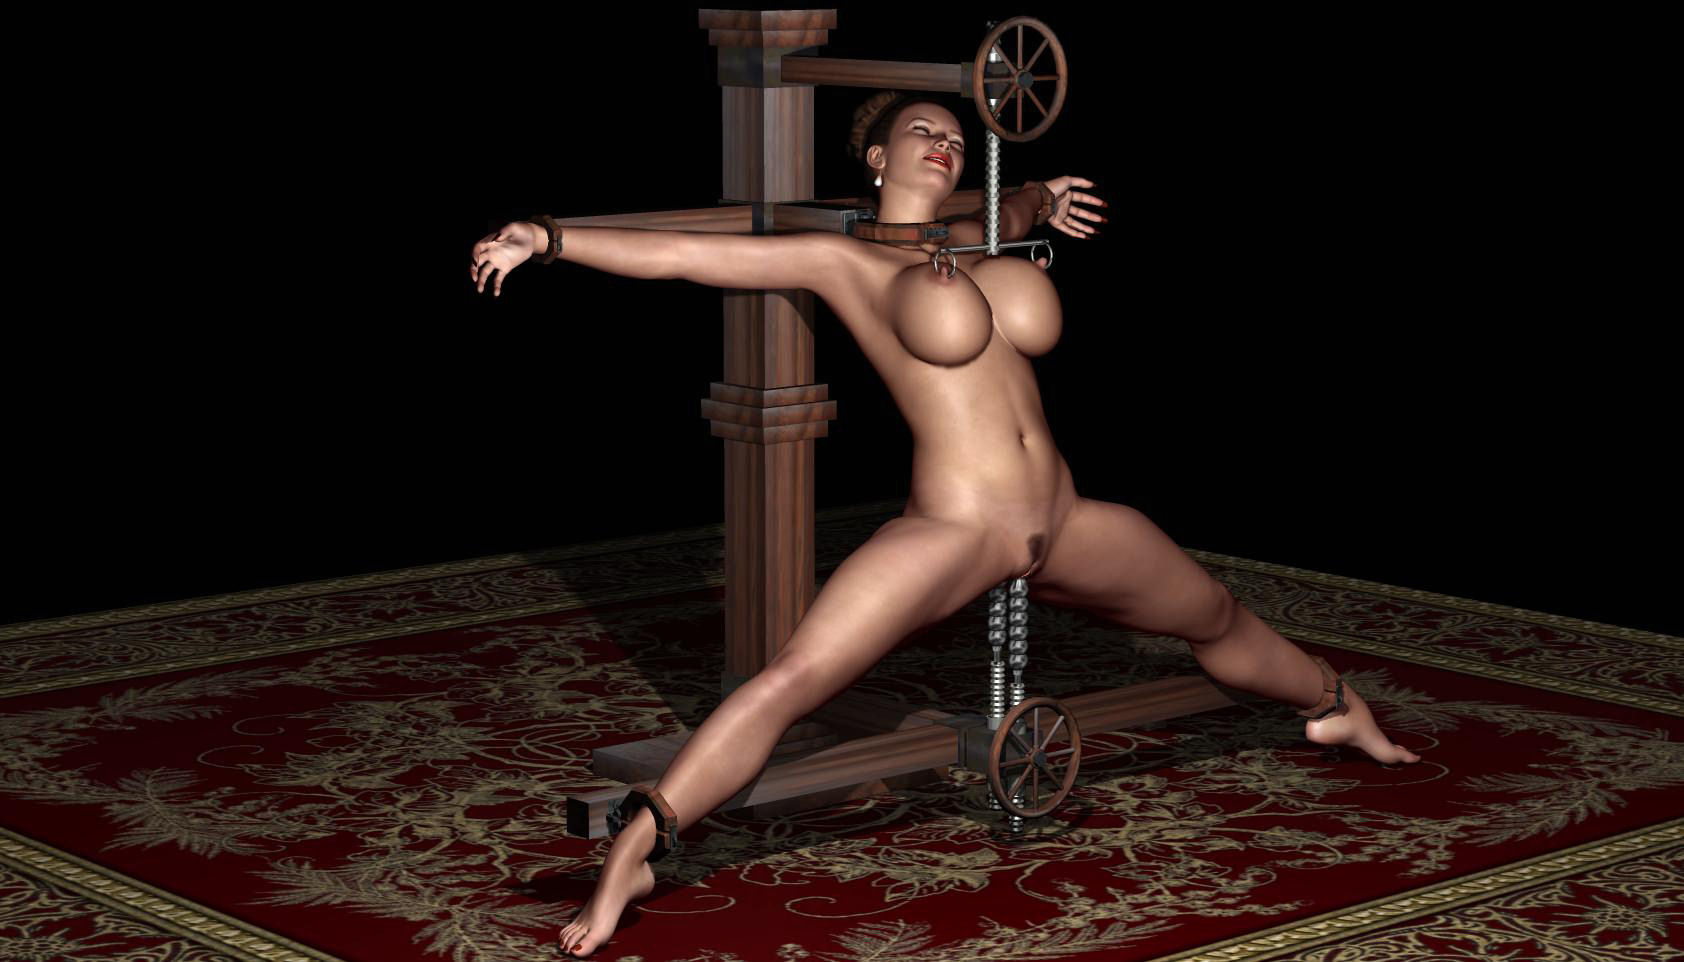 3D Bdsm Movies free 3d cartoon and 3d comics porn galleries